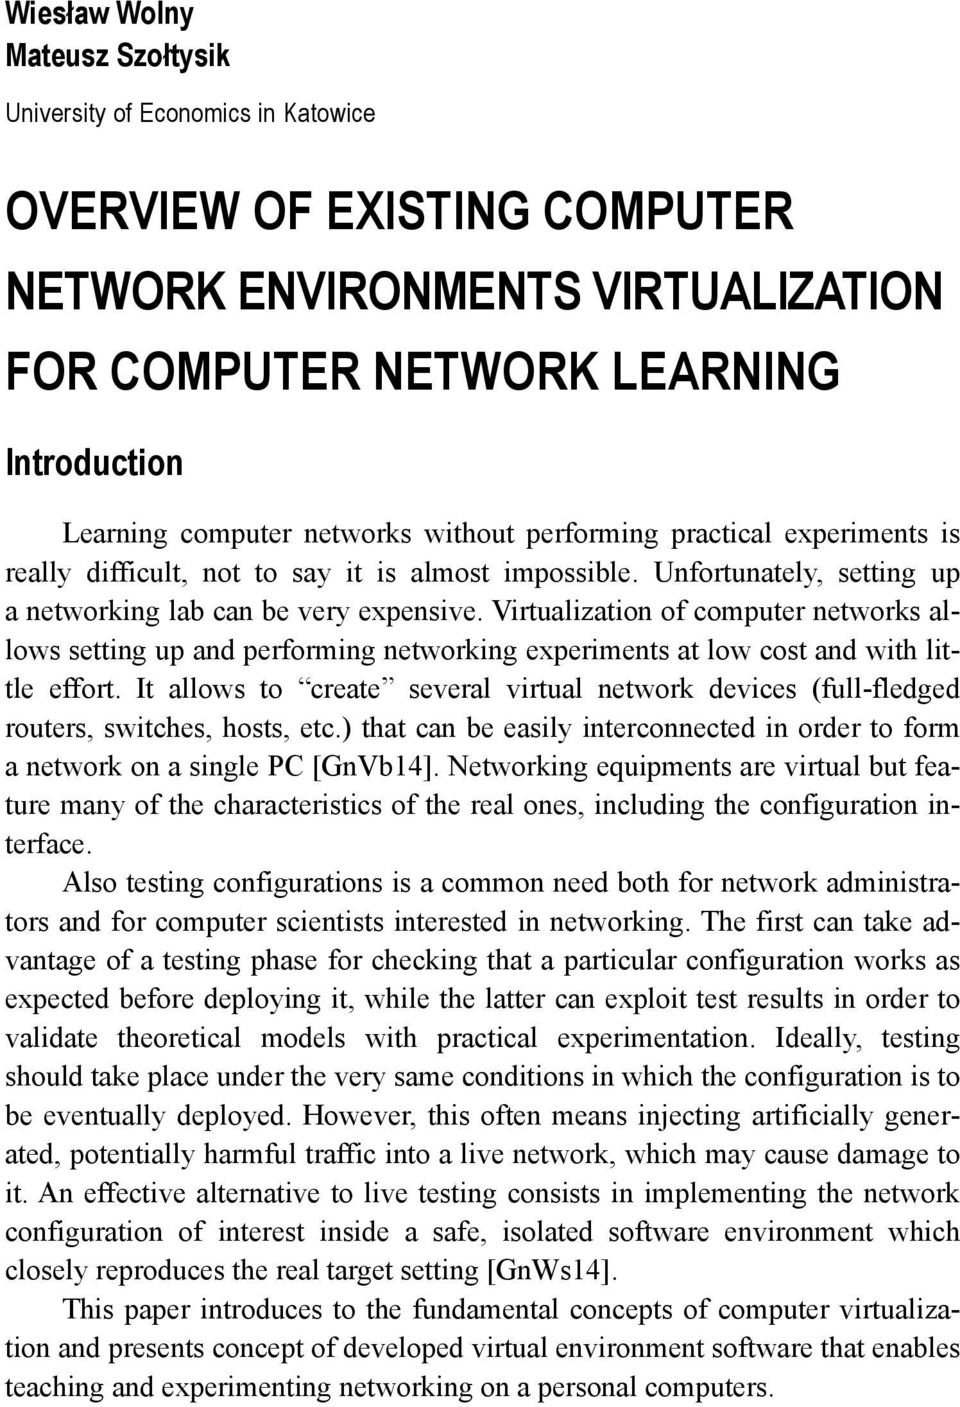 Virtualization of computer networks allows setting up and performing networking experiments at low cost and with little effort.